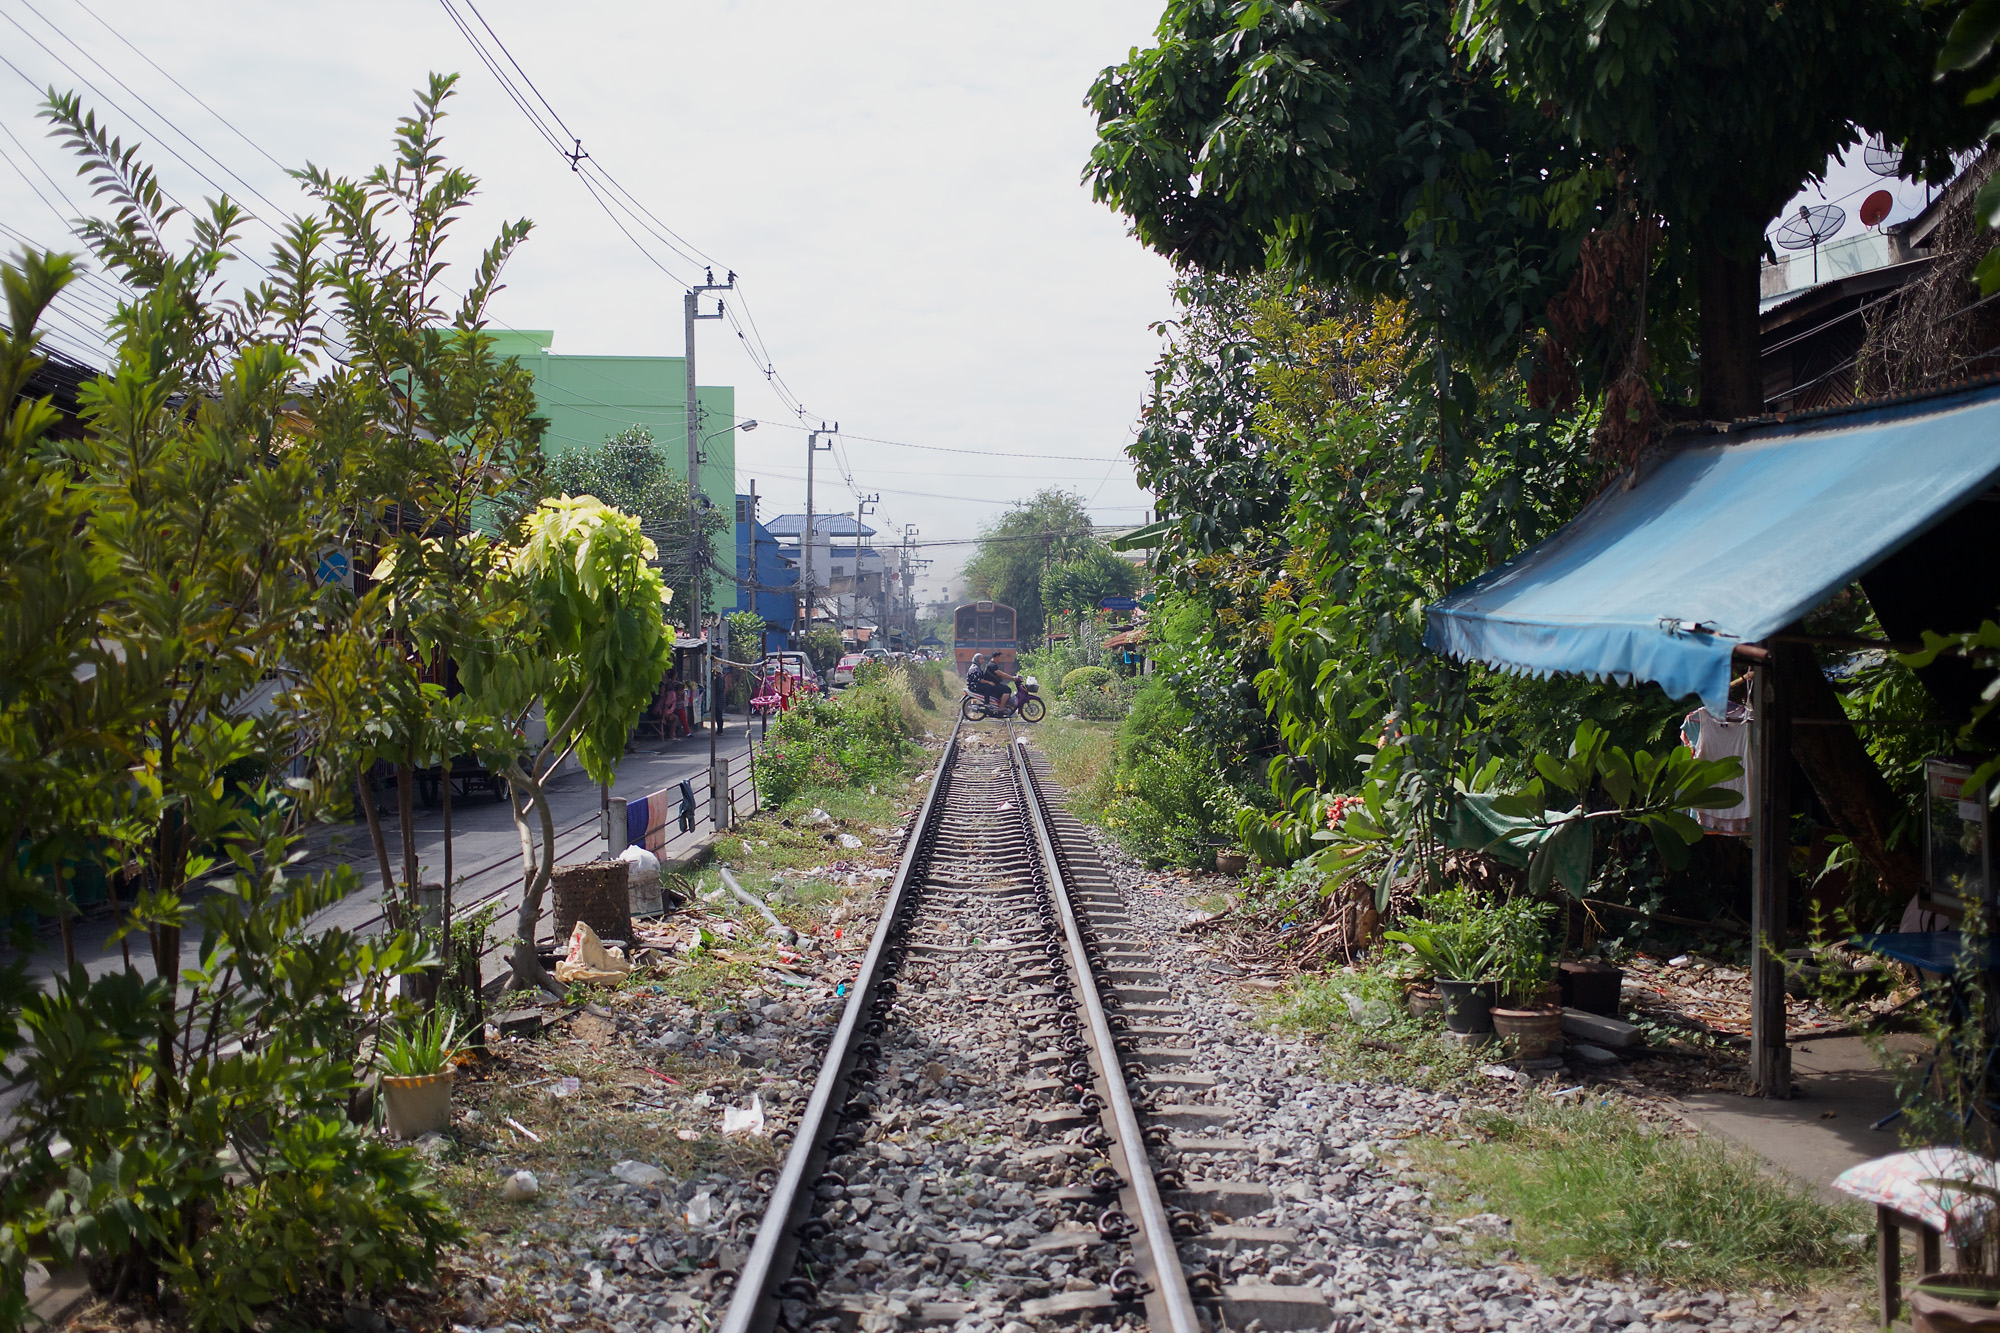 distant view of railway